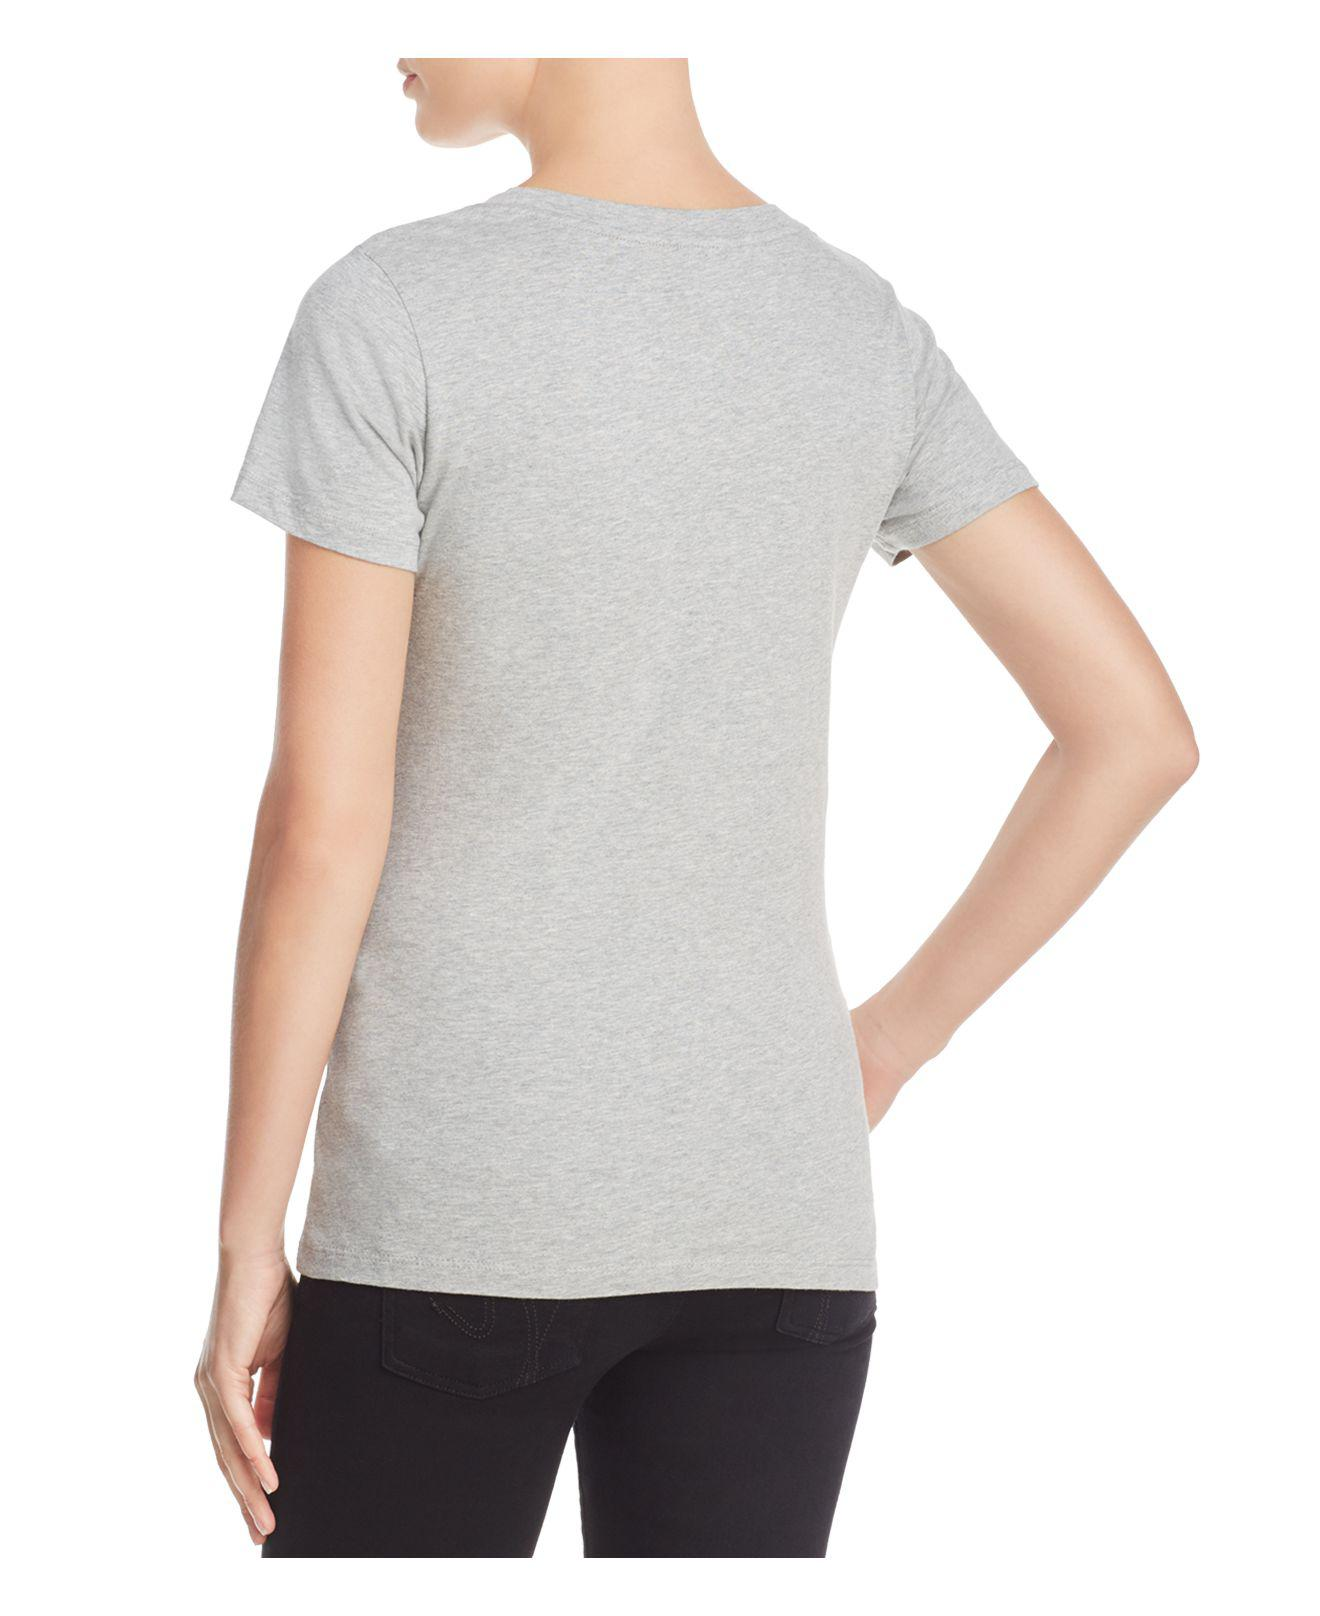 f6073597b6e French Connection Wink Graphic Tee in Gray - Lyst